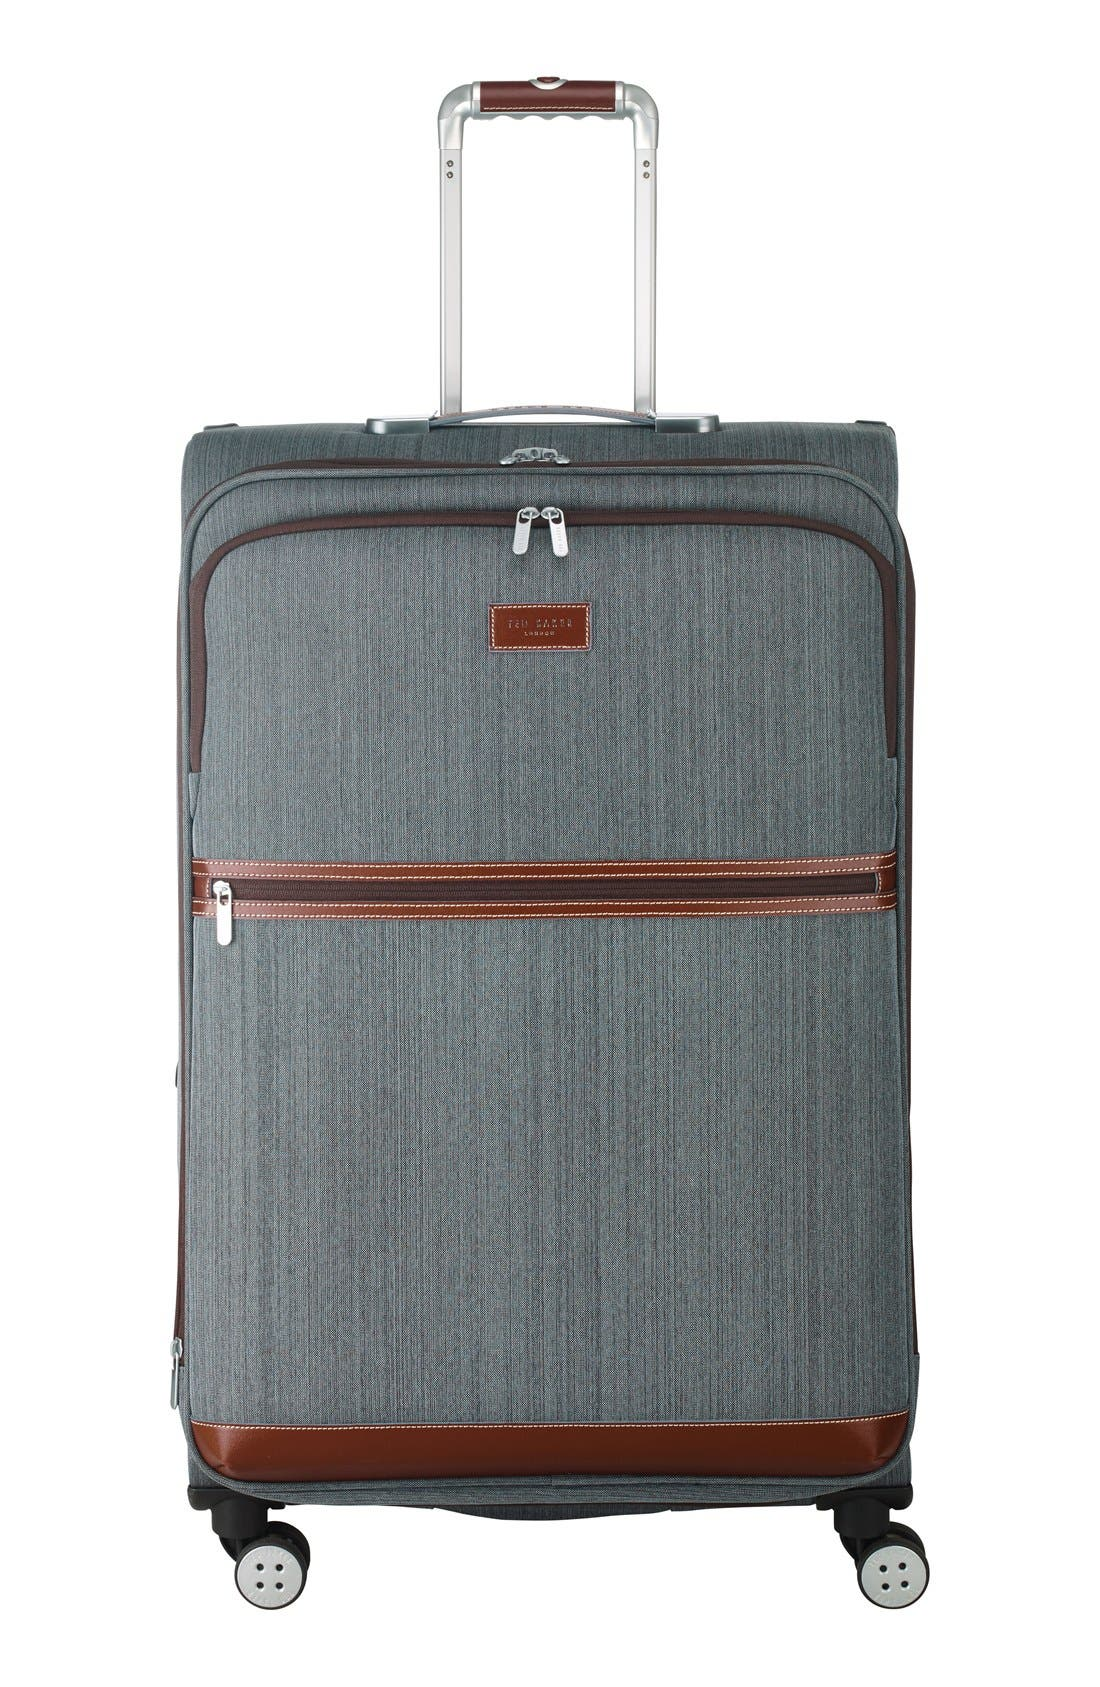 TED BAKER LONDON Large Falconwood Grey Four Wheel Suitcase